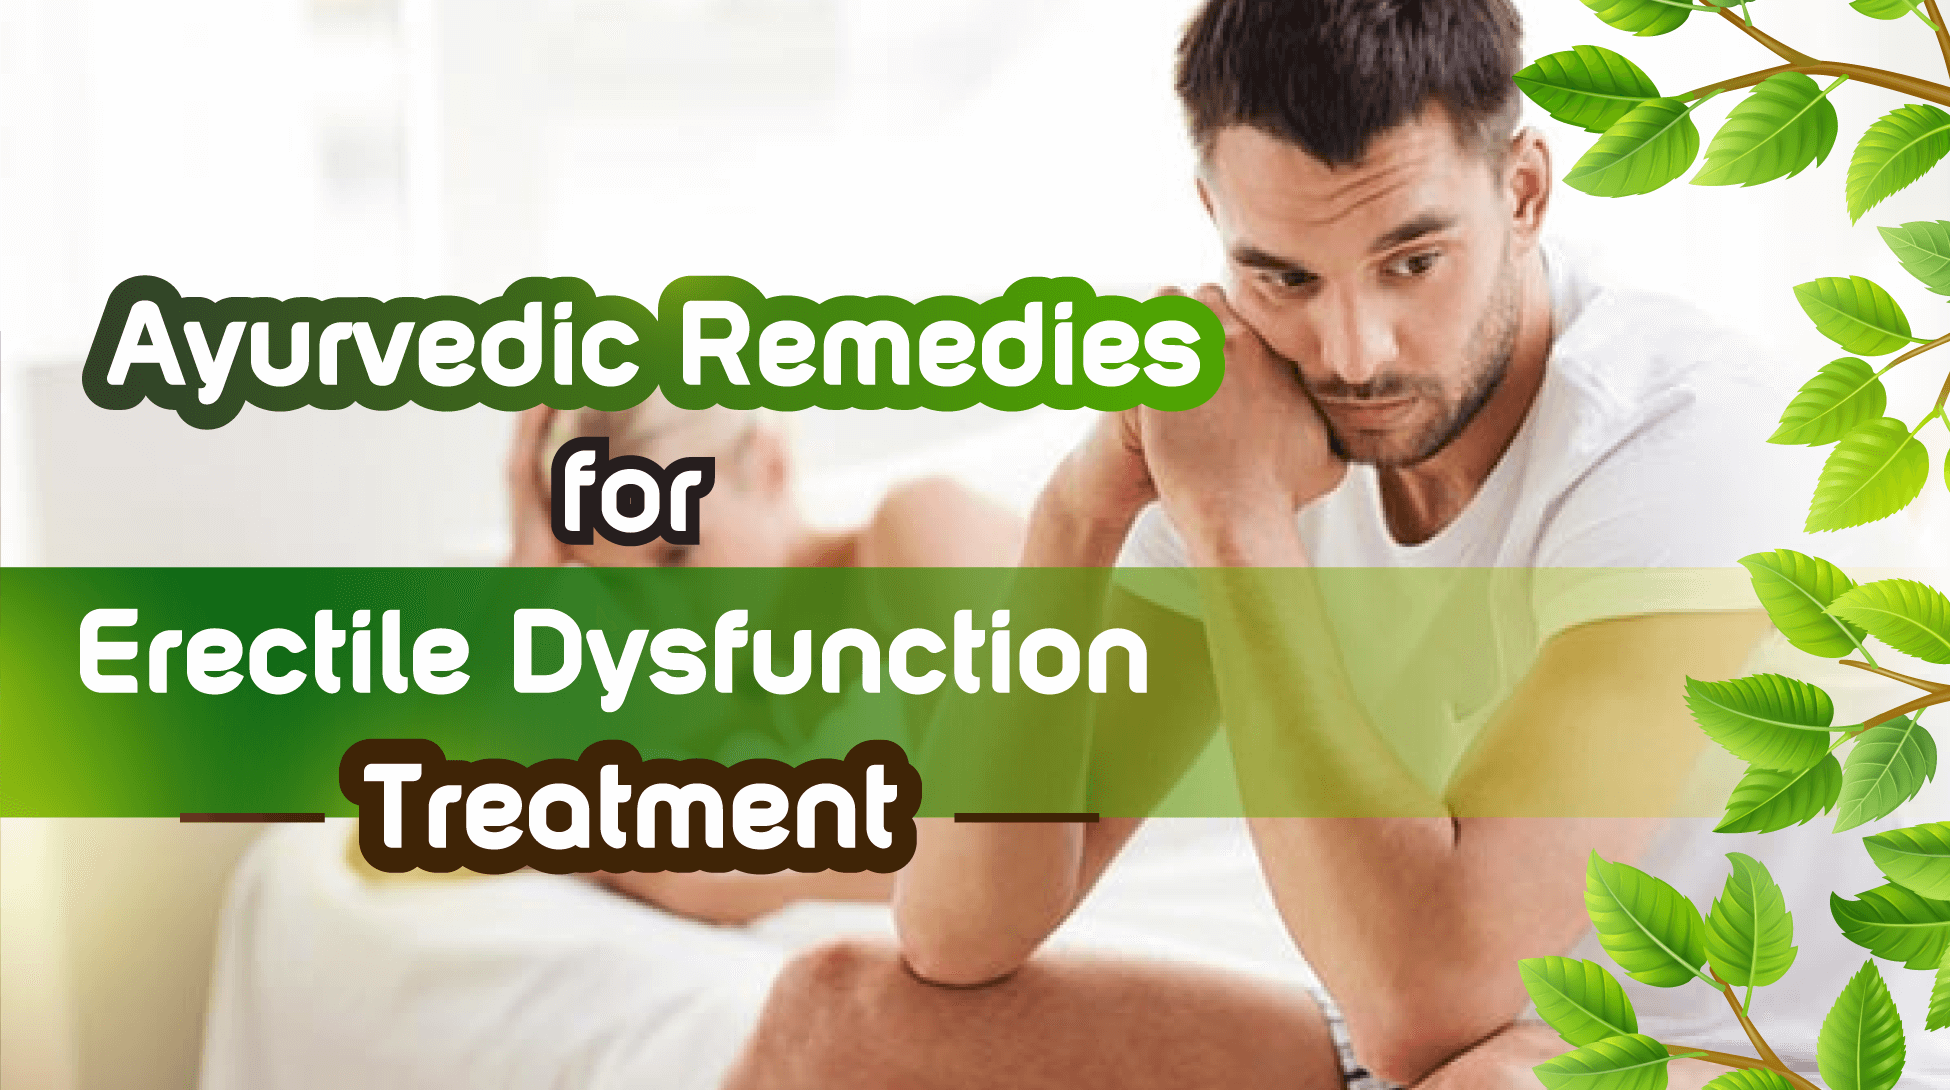 Treating Erectile Dysfunction Using The Ayurvedic Approach